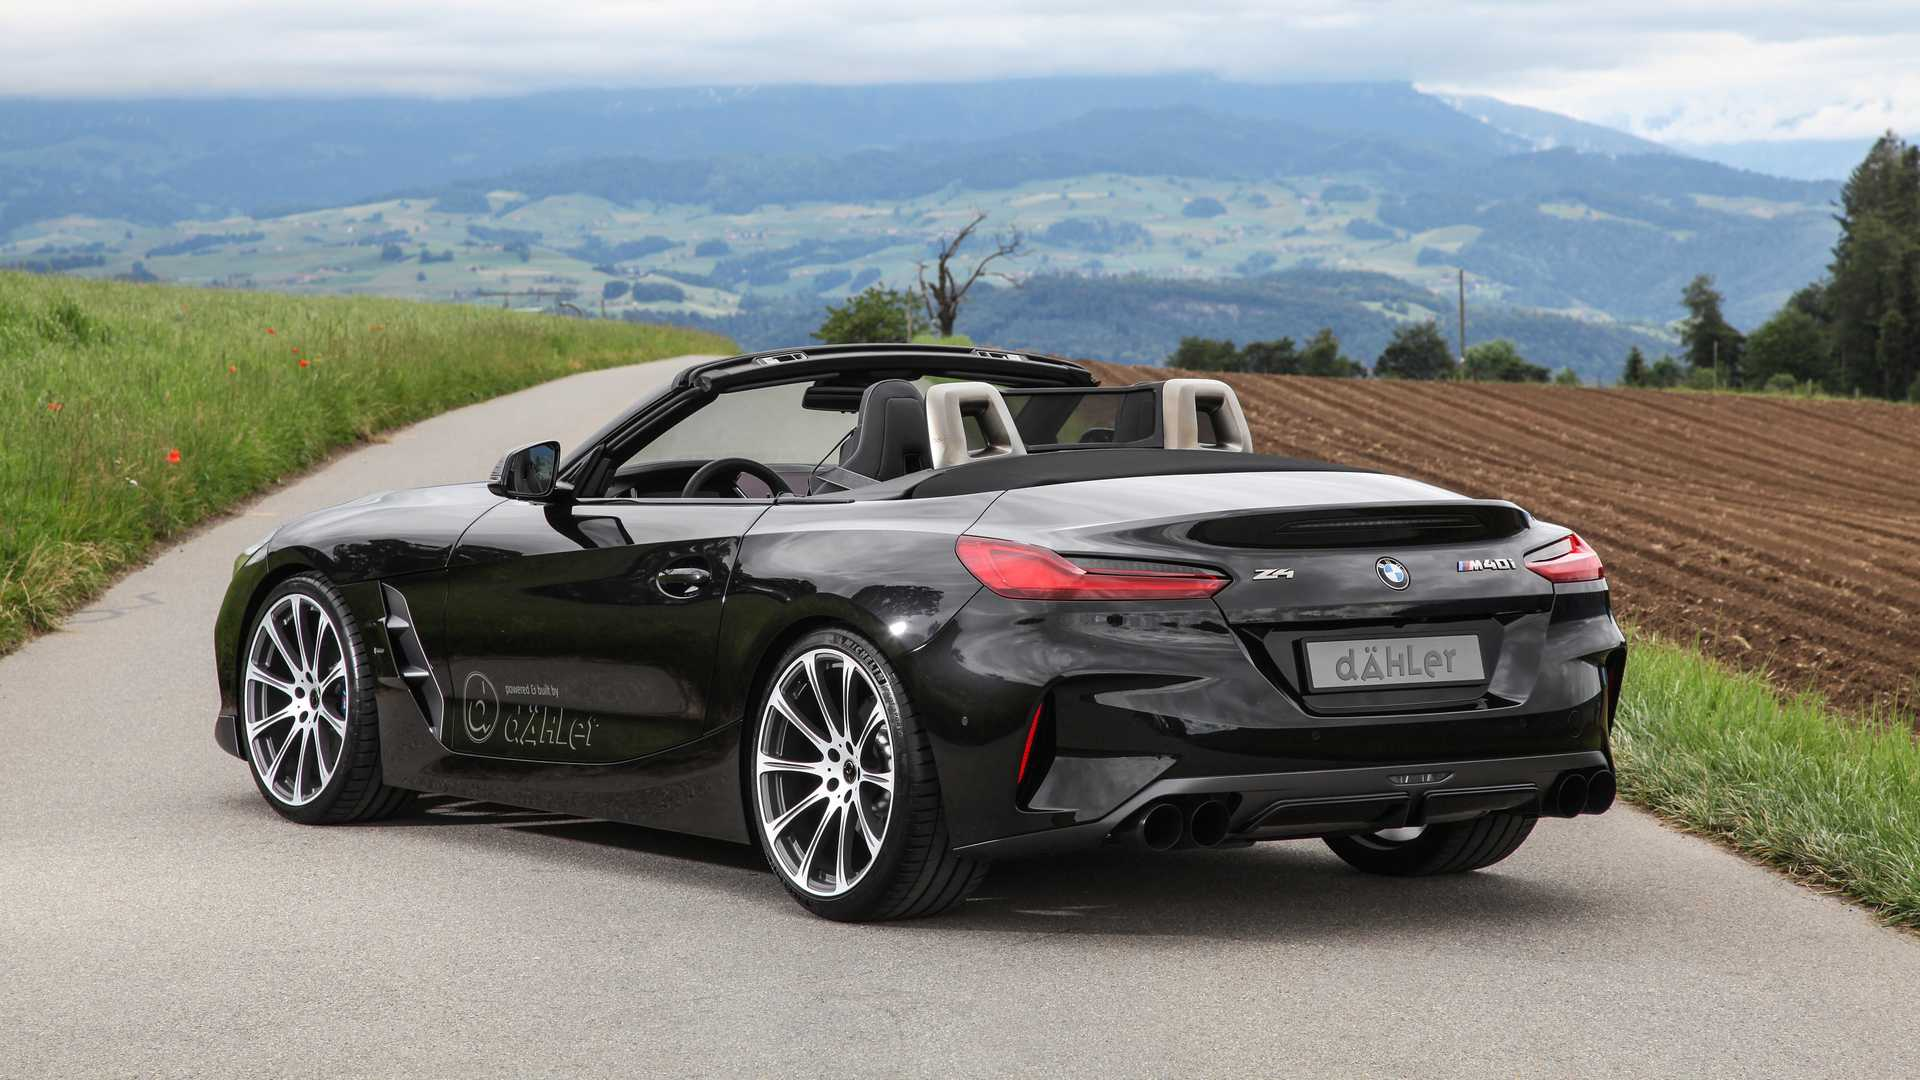 BMW-Z4-M40i-by-Dahler-9